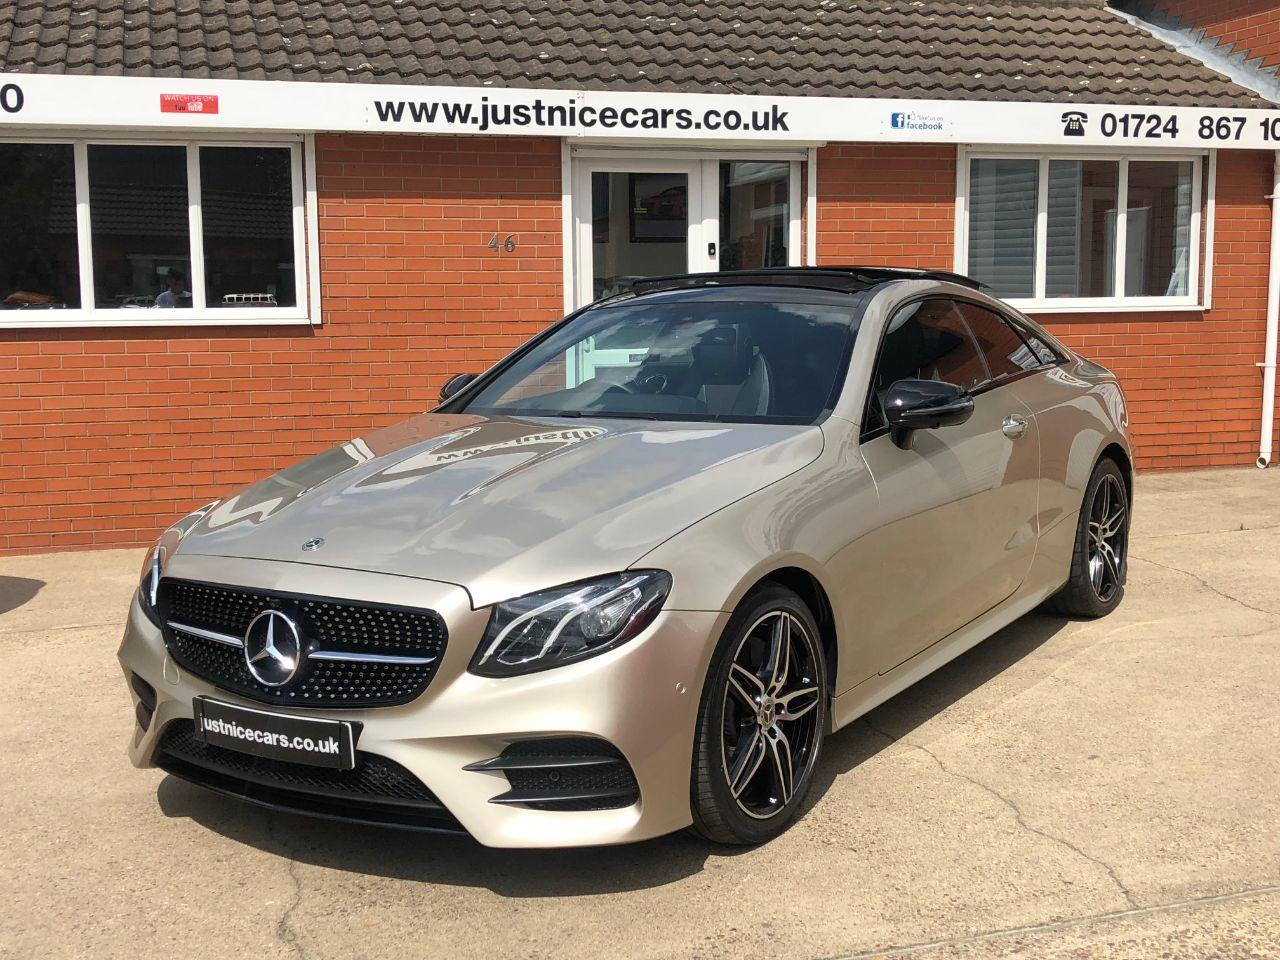 Mercedes-Benz E Class 2.0 E220d AMG Line Premium 2dr 9G-Tronic Coupe Diesel Aragonite Silver Gold Metallic